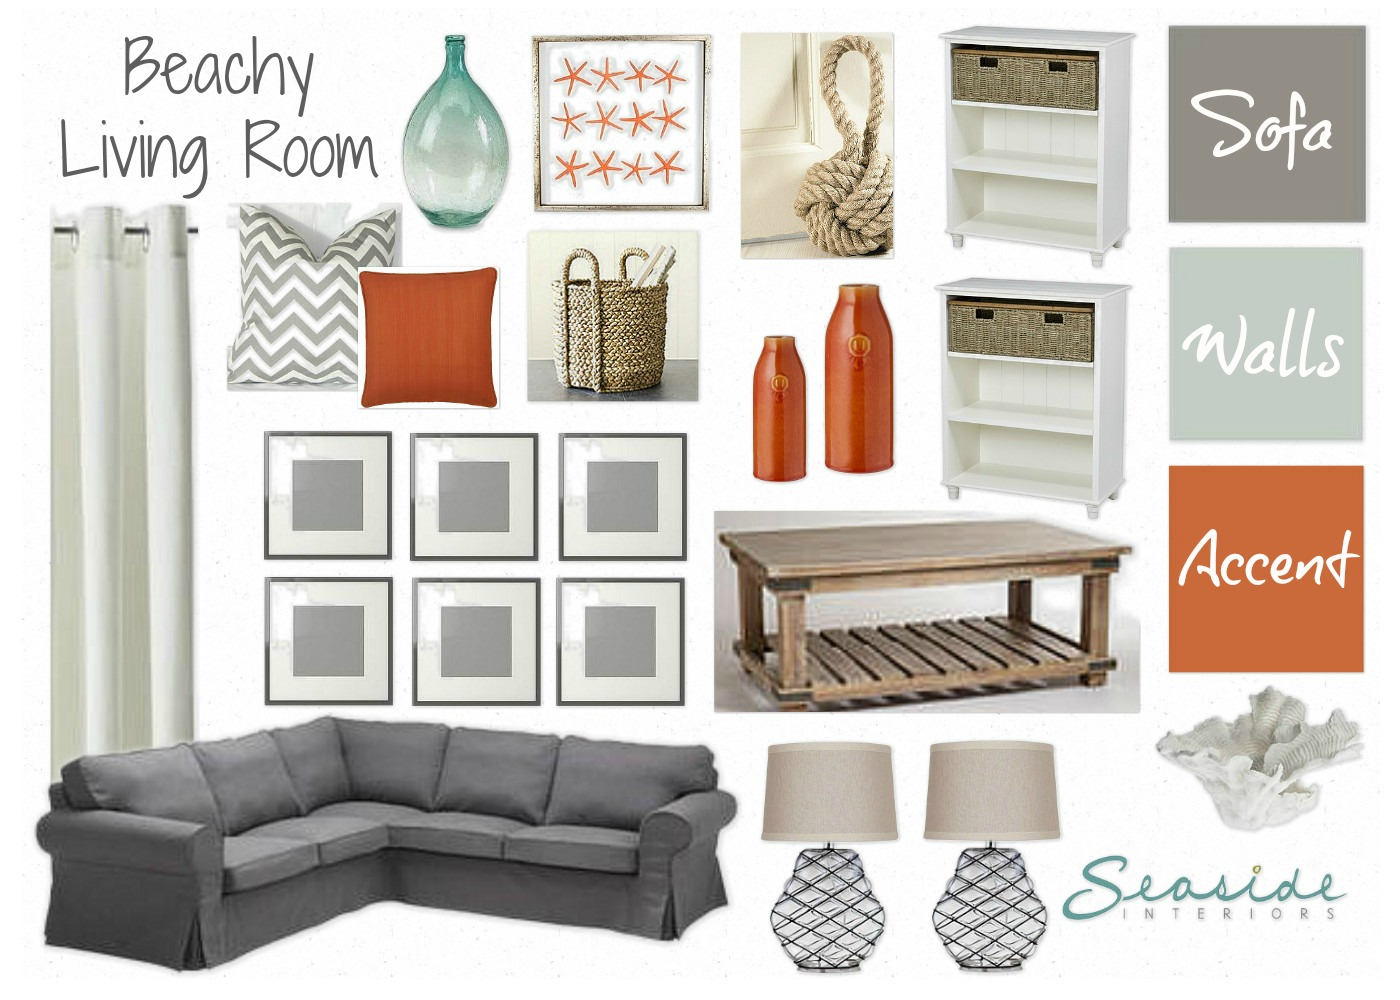 Blue and orange living room - Beachy Living Room With Grays And Orange